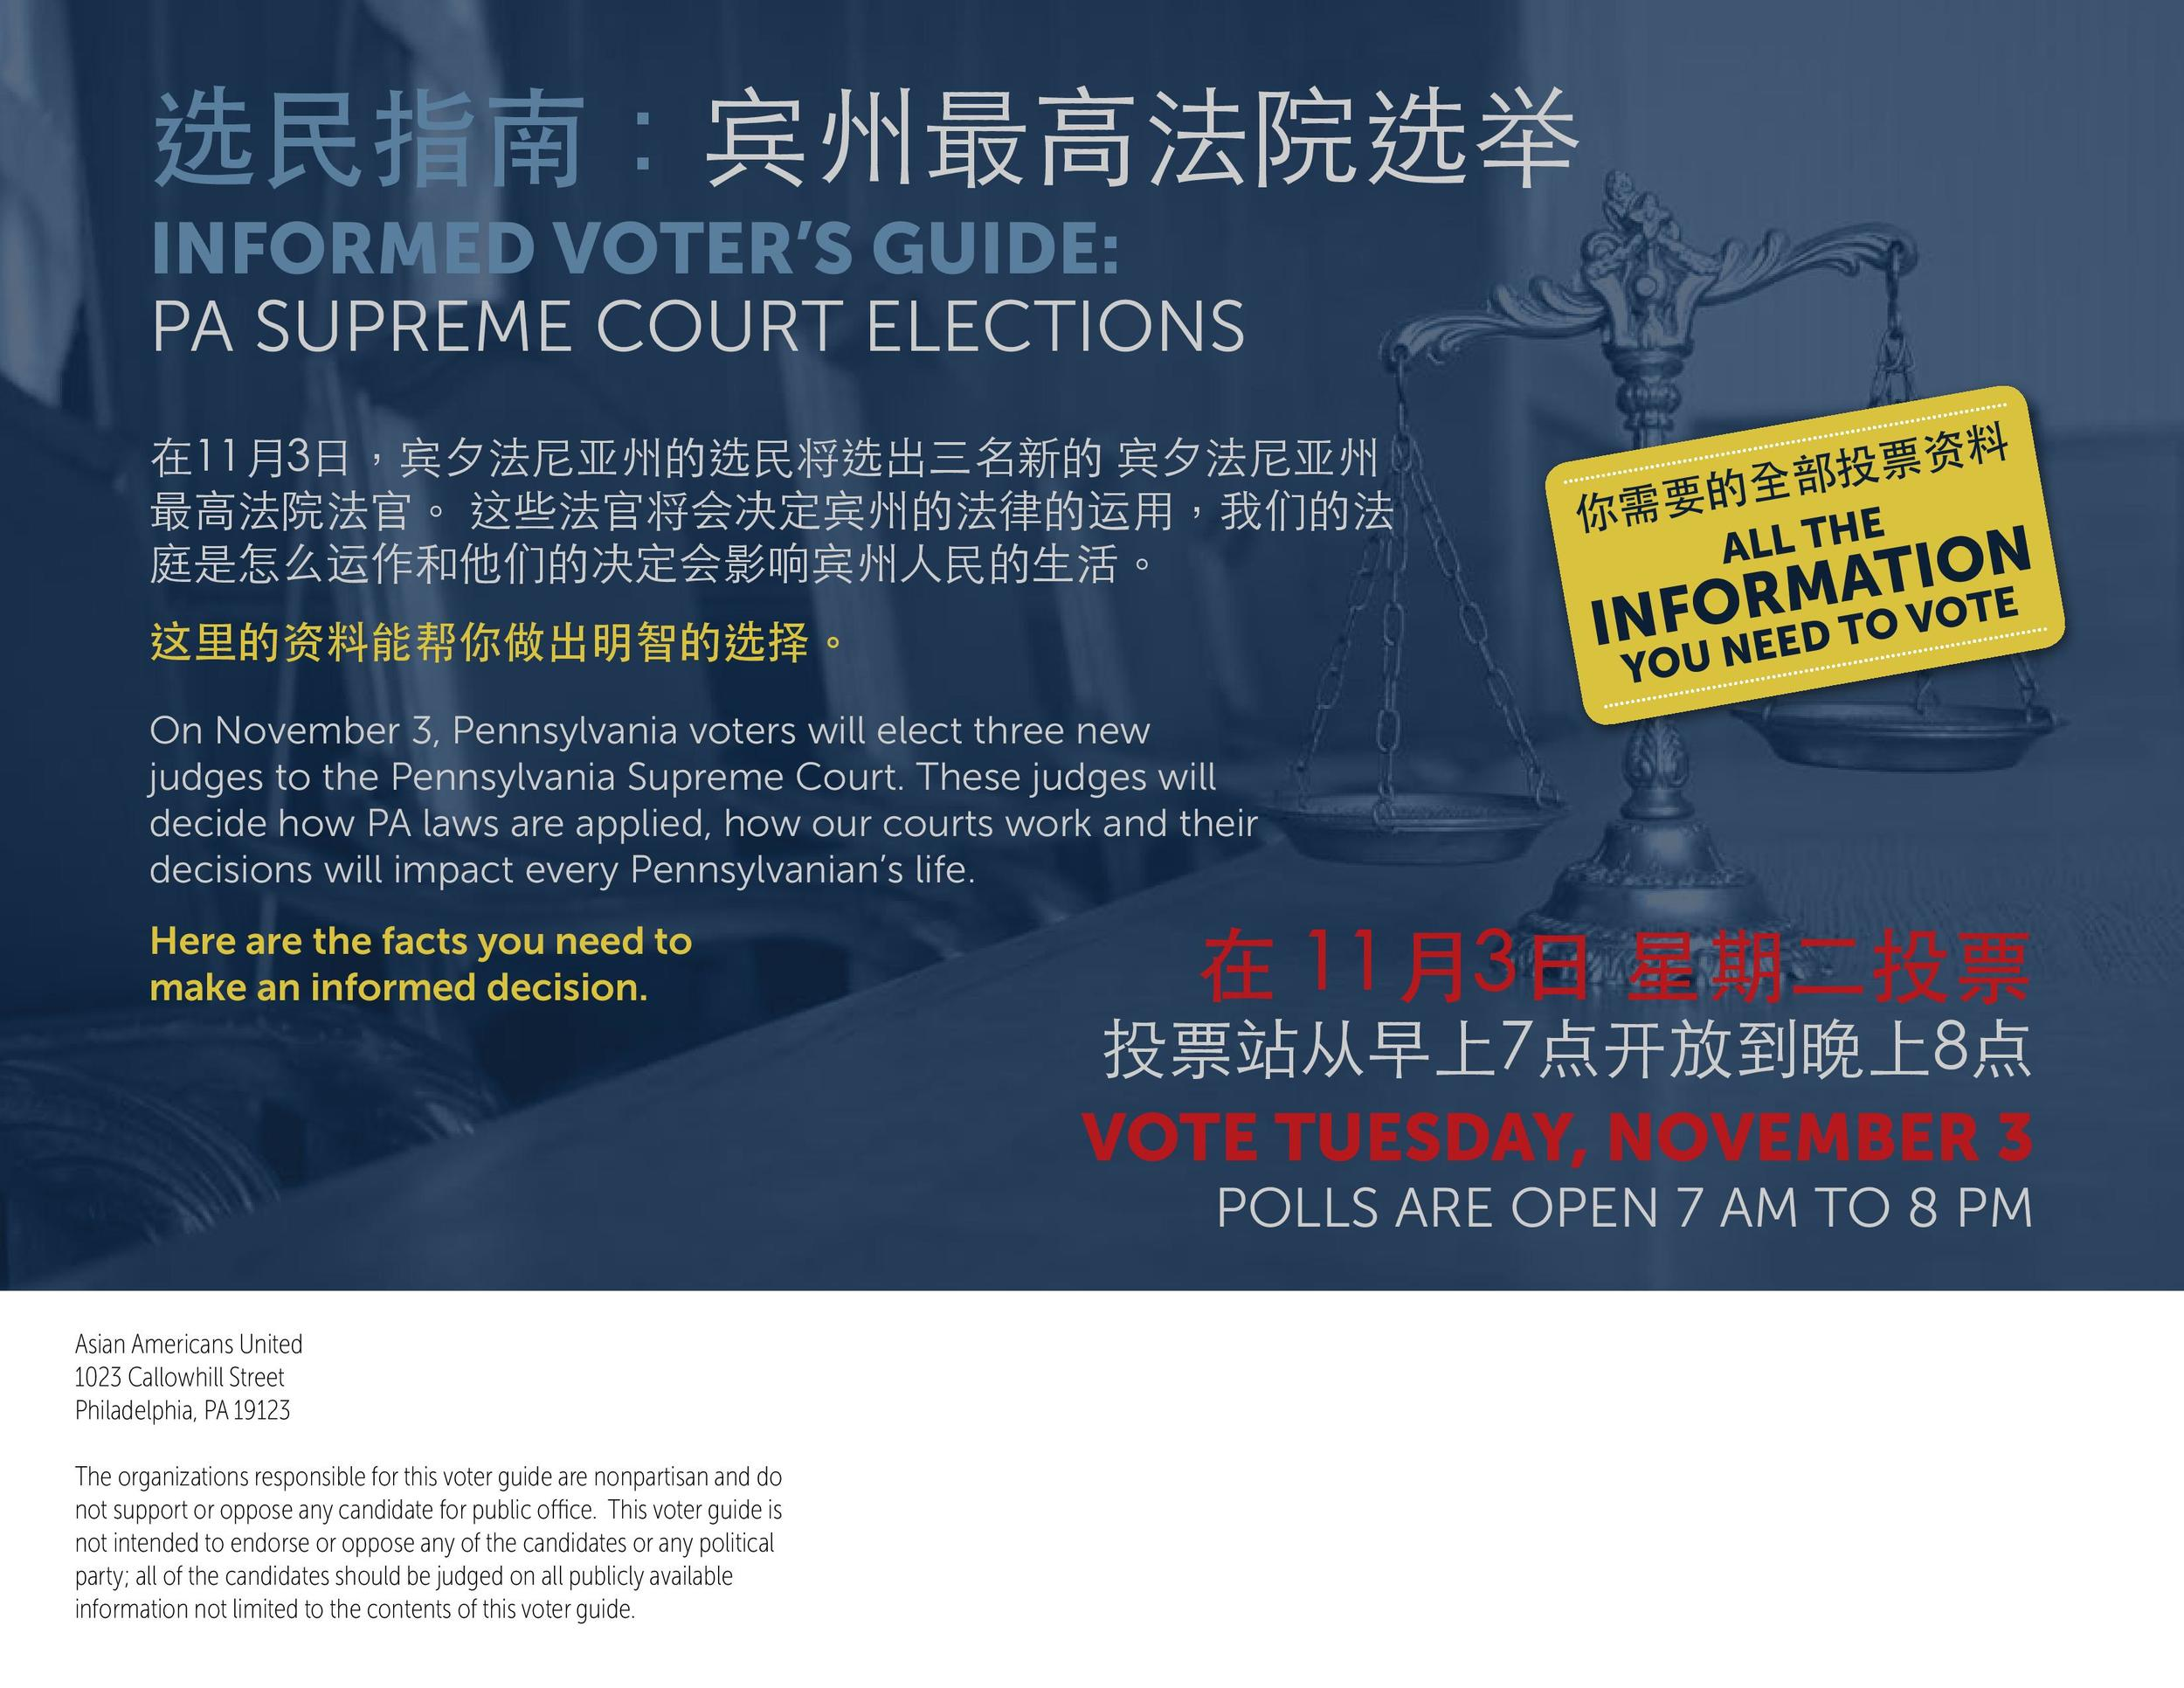 PA+Voices+Short+Ballot+Guide-Chinese+3327-fnl-page-001.jpg